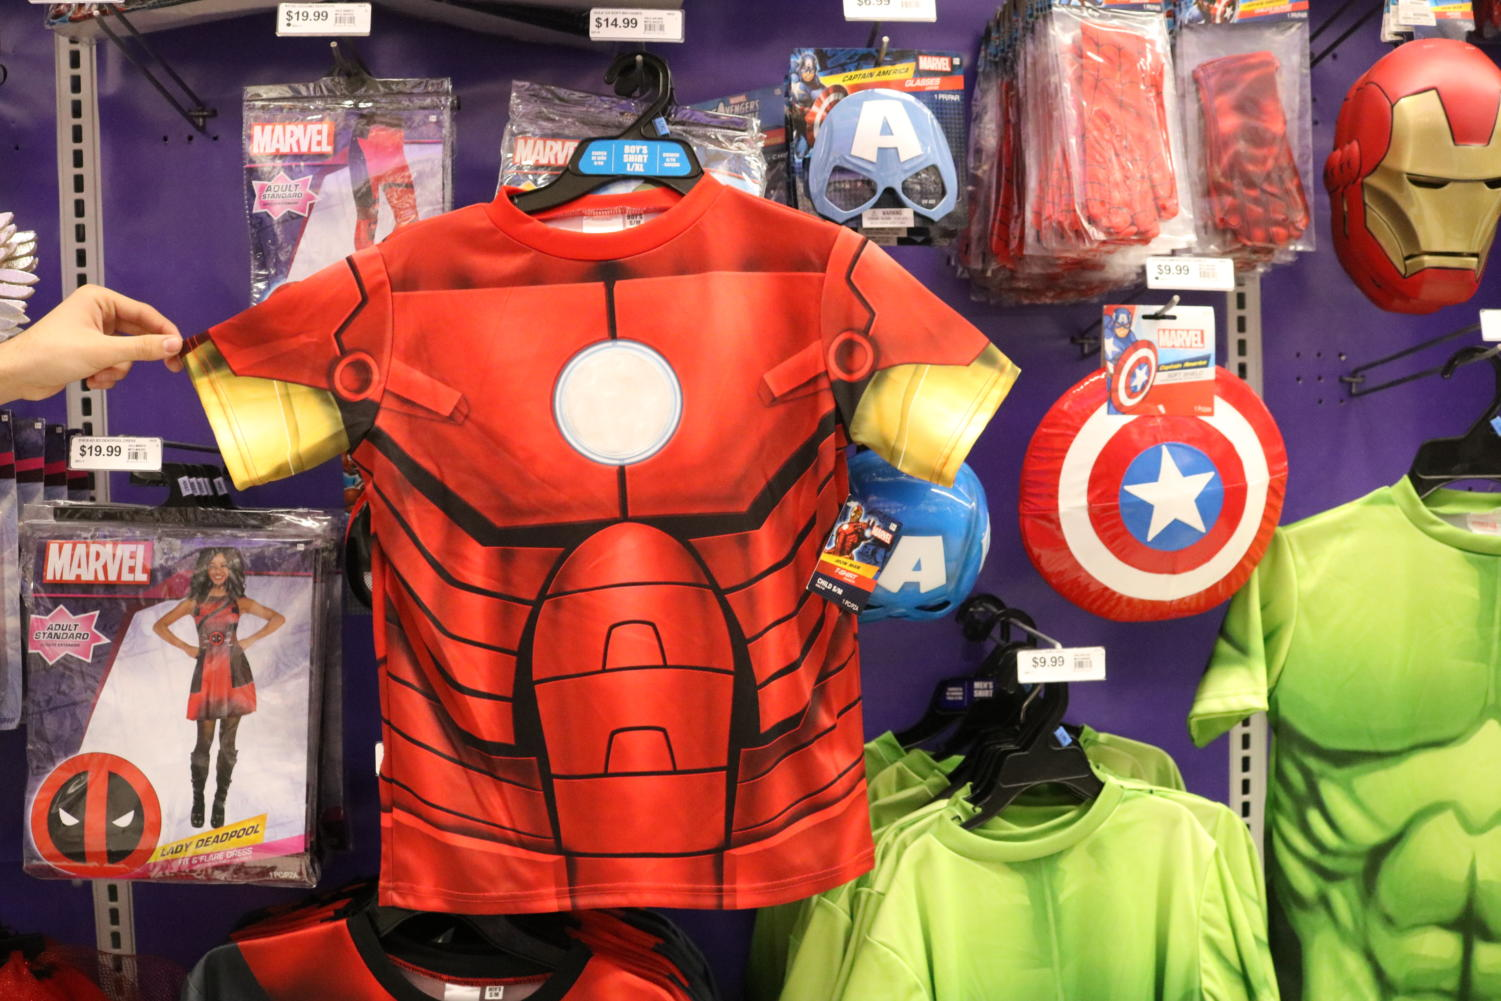 Recreating Iron Man is just as easy as purchasing this 9.99 t-shirt from a local Party City. The t-shirt can easily be paired with additional decorations like an Iron Man mask for 4.99 at the same location.